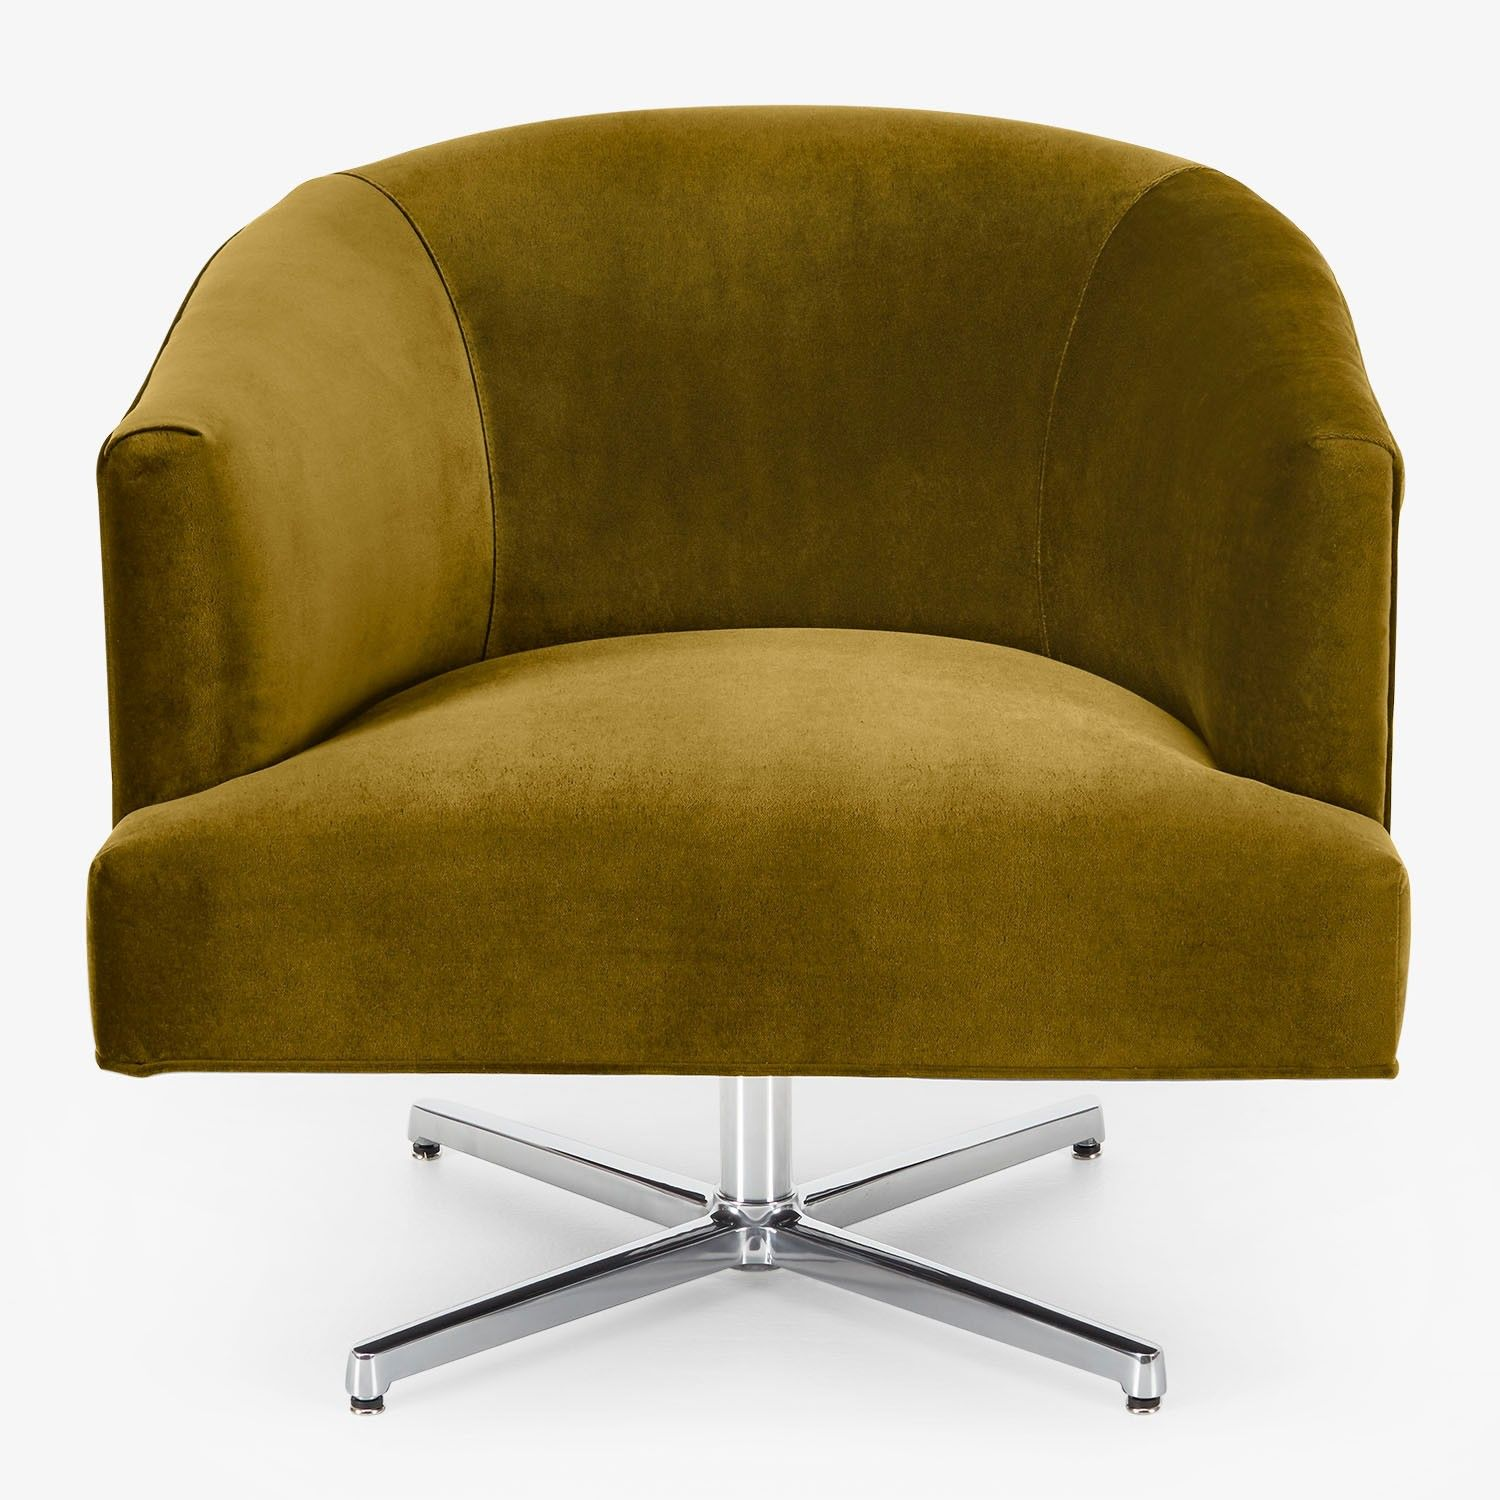 swivel chair on carpet dorm chairs cobble hill fremont abc home yazlander in